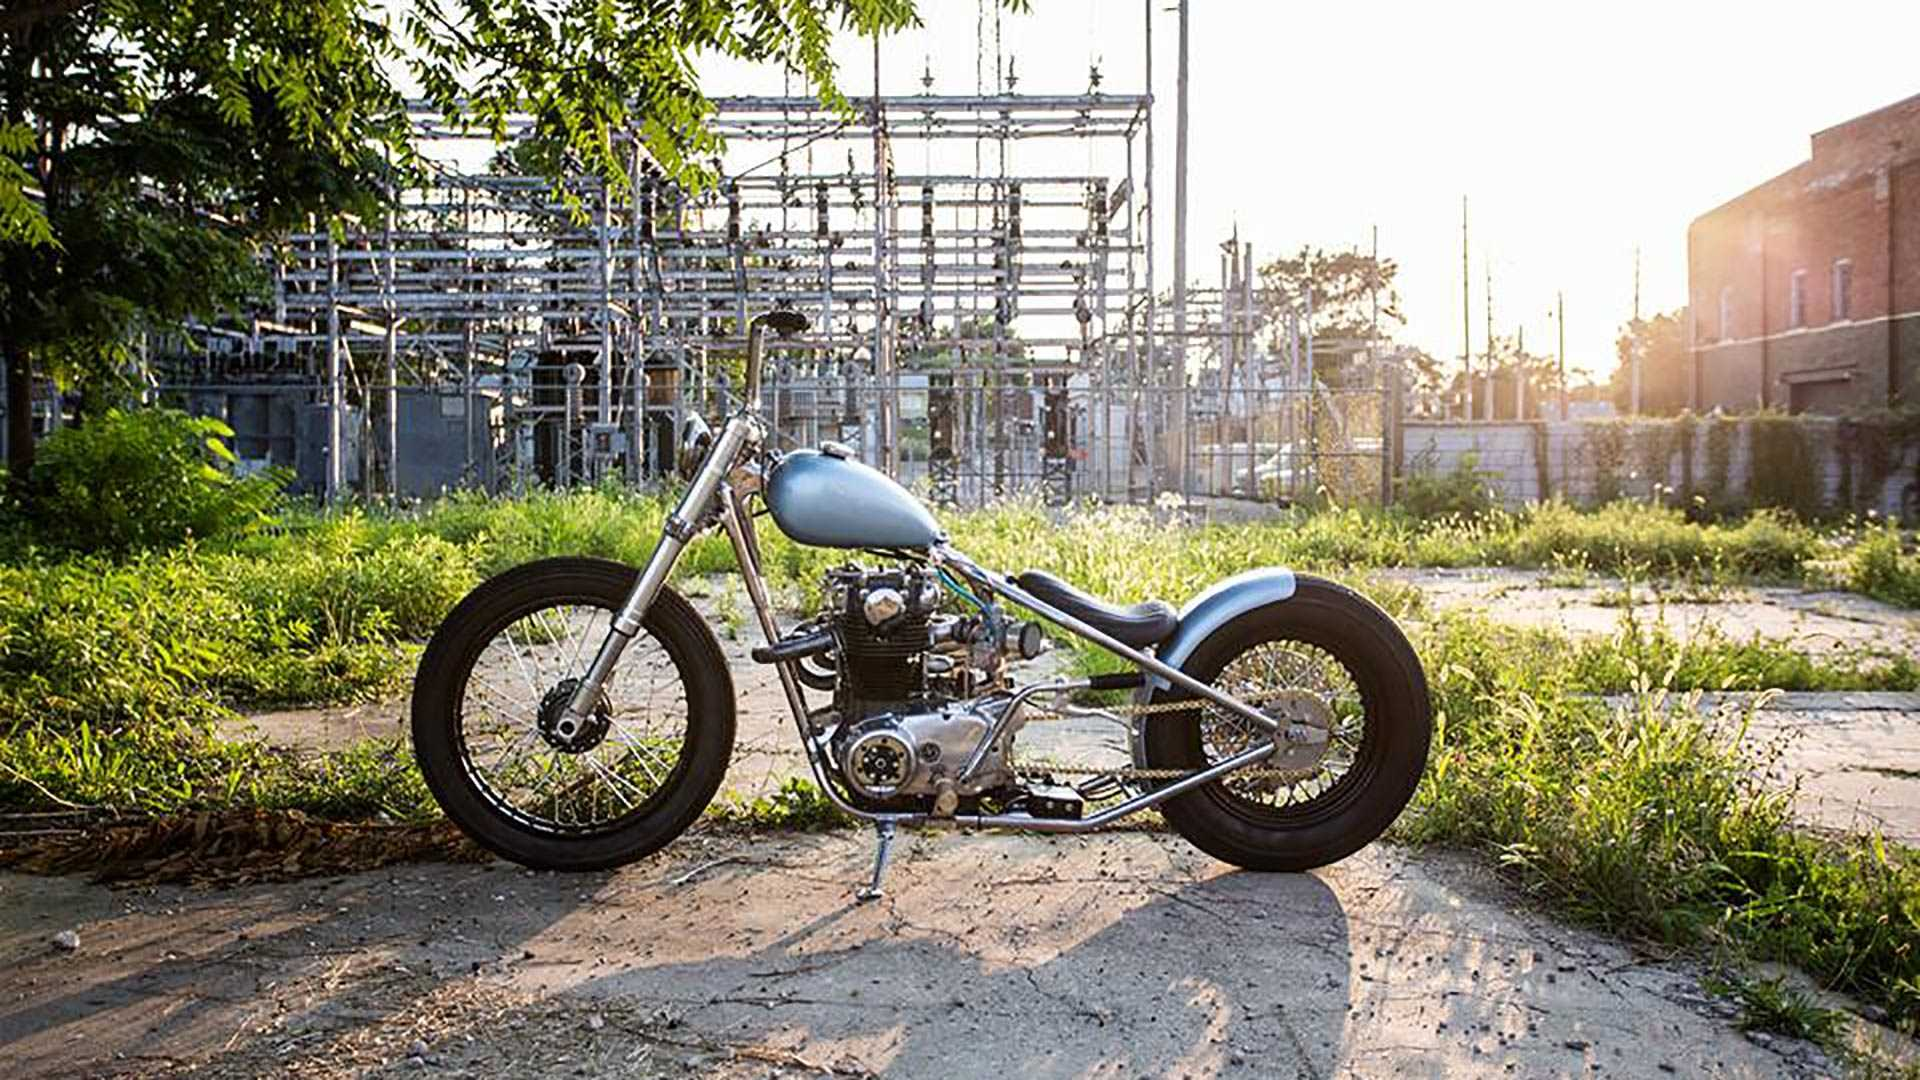 Custom Bobber Blues With This Modified 1972 Yamaha XS650